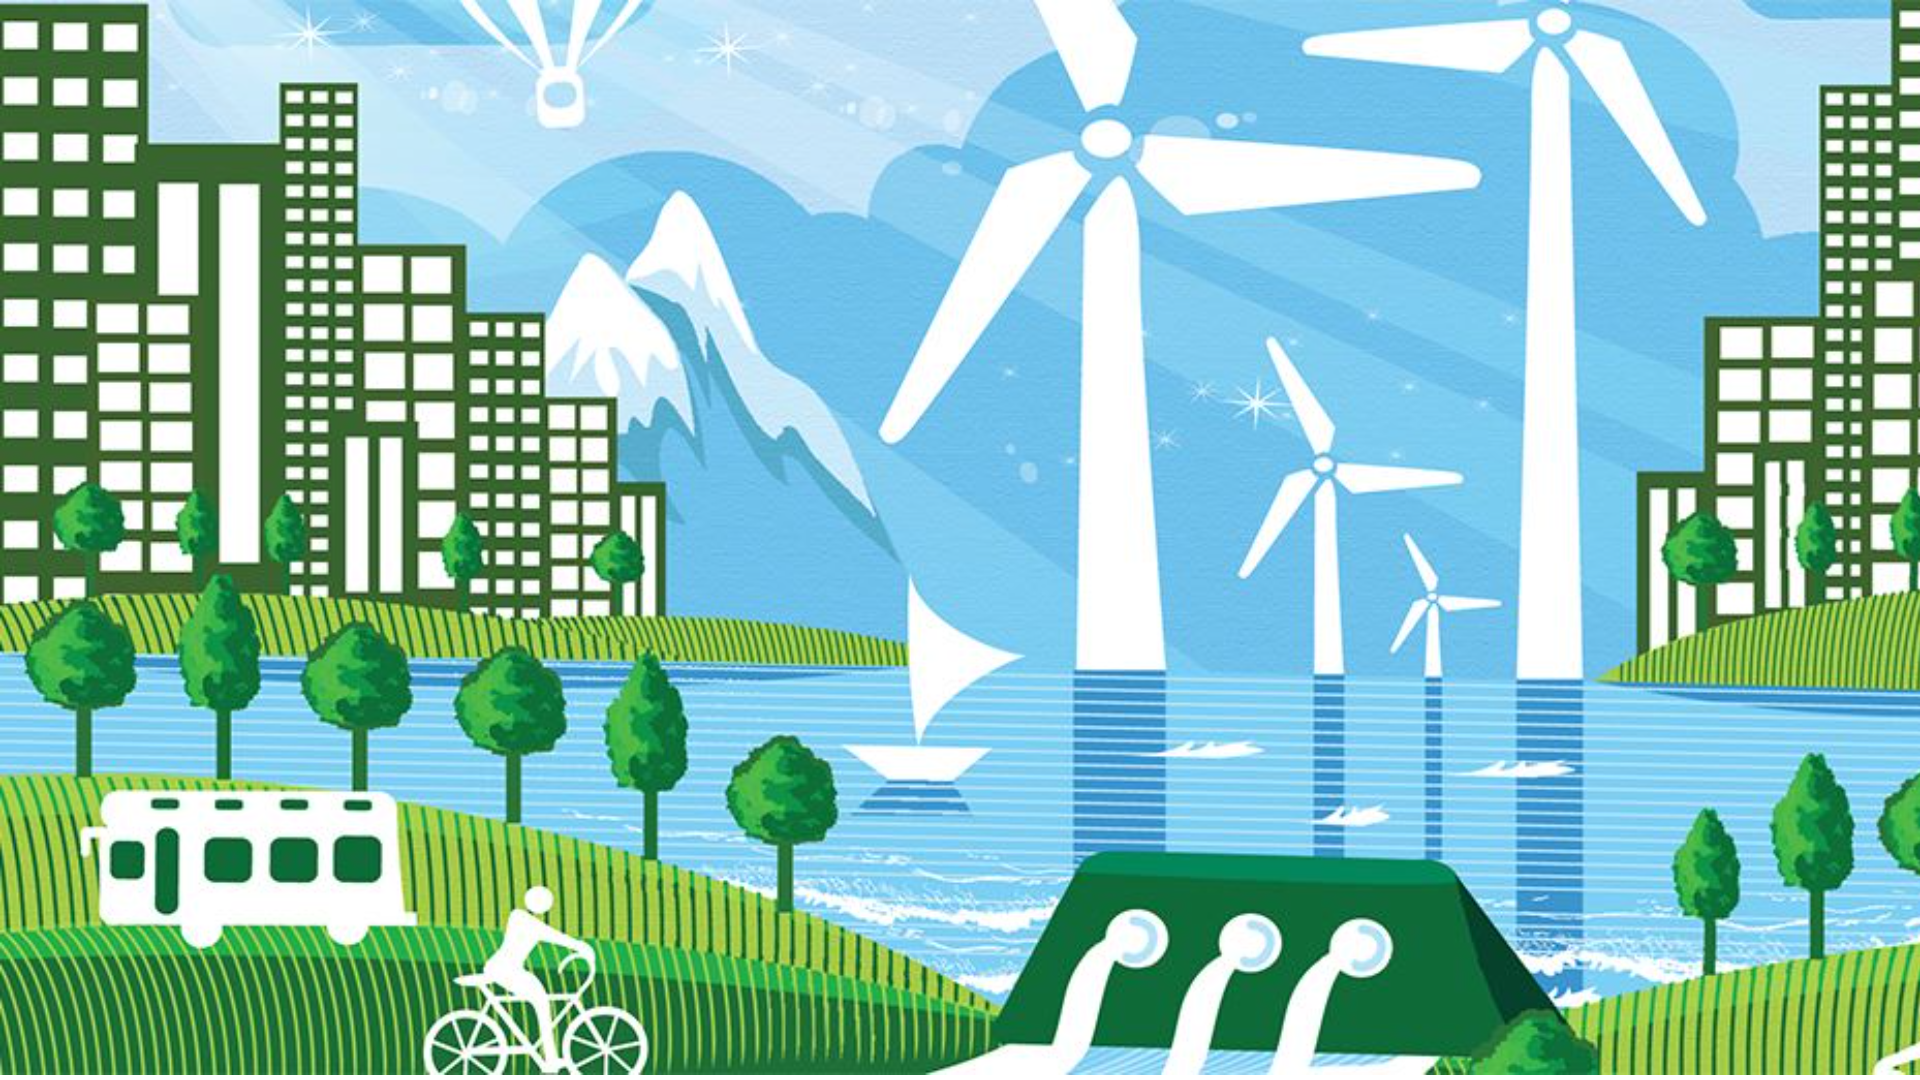 Scaling green investments now